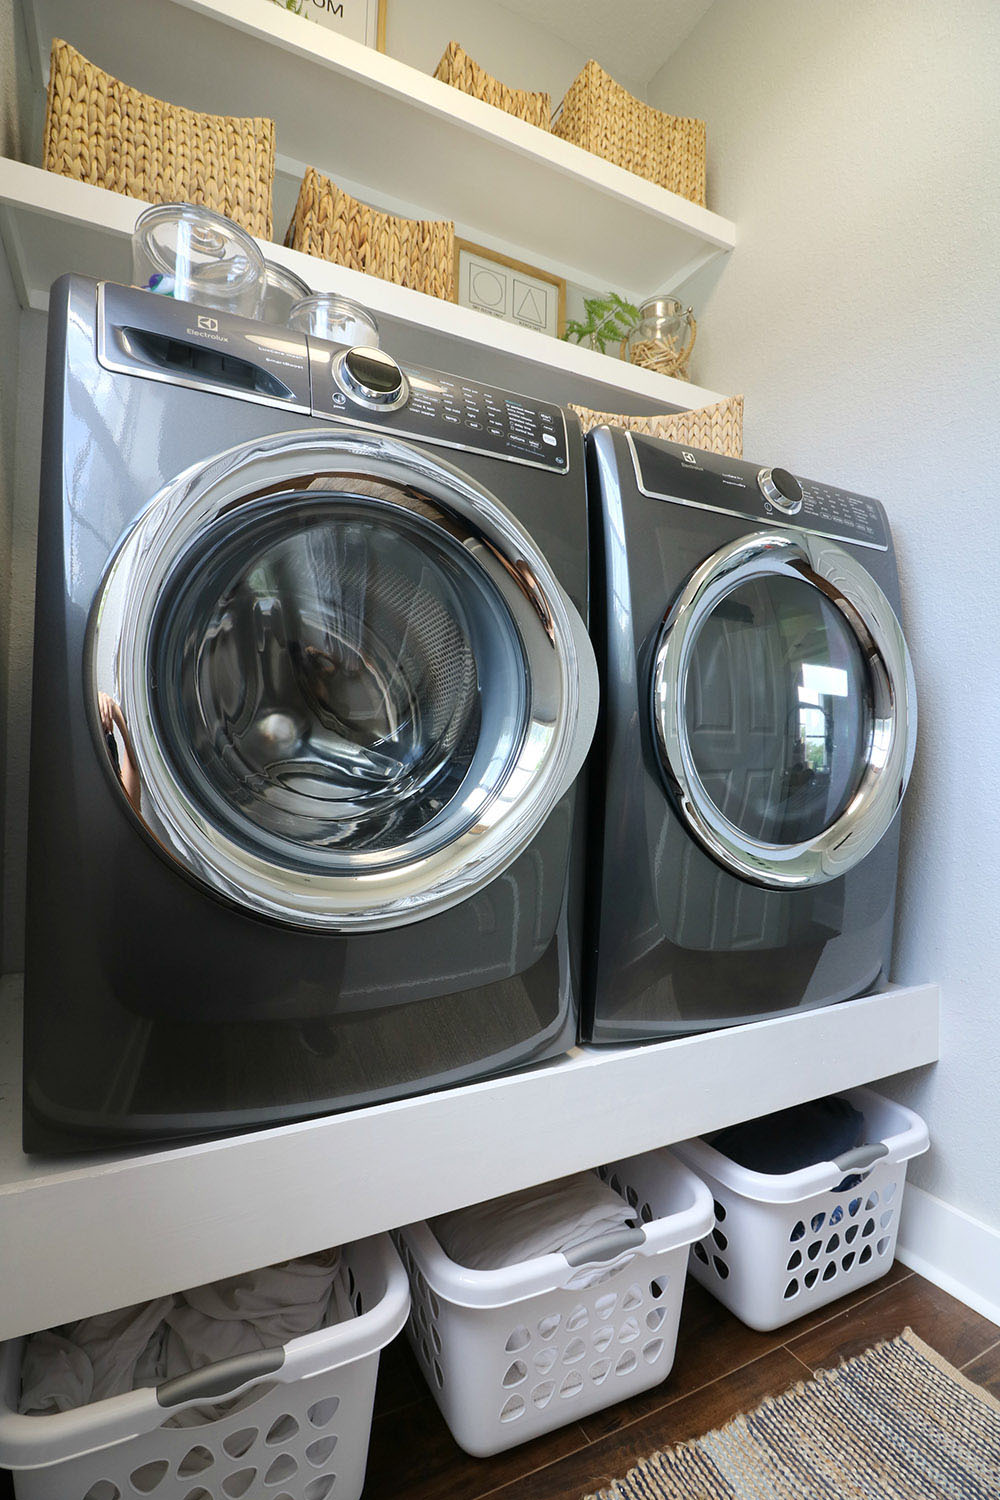 A laundry room with storage above and below a front load washer and dryer.